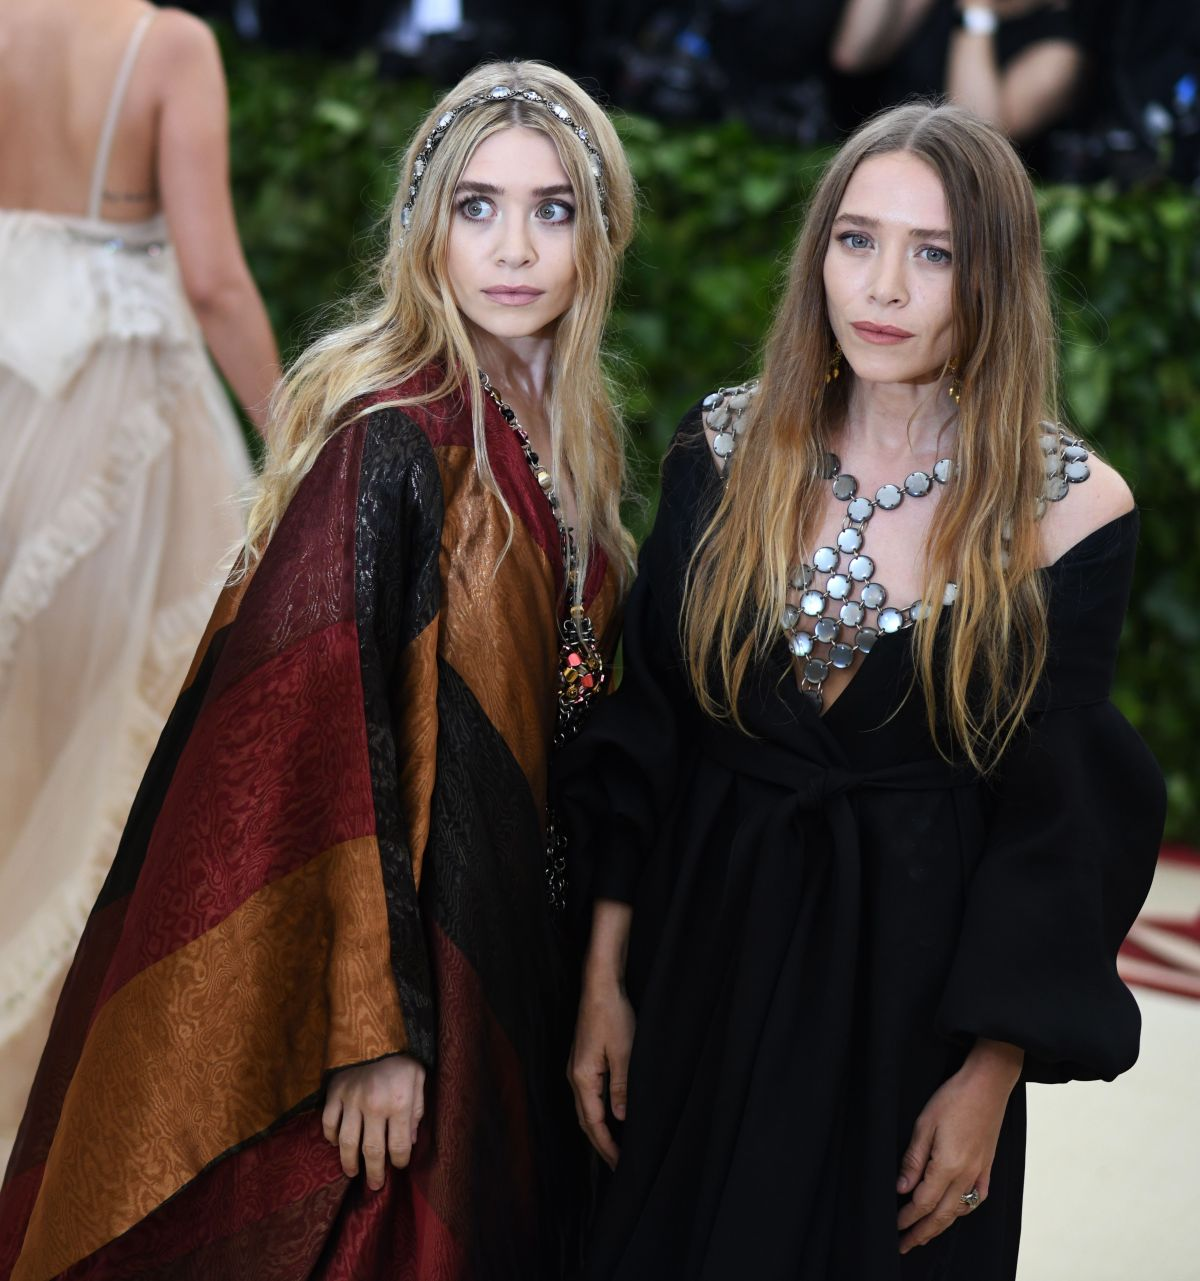 mary kate and ashley olsen at met gala 2018 in new york 05